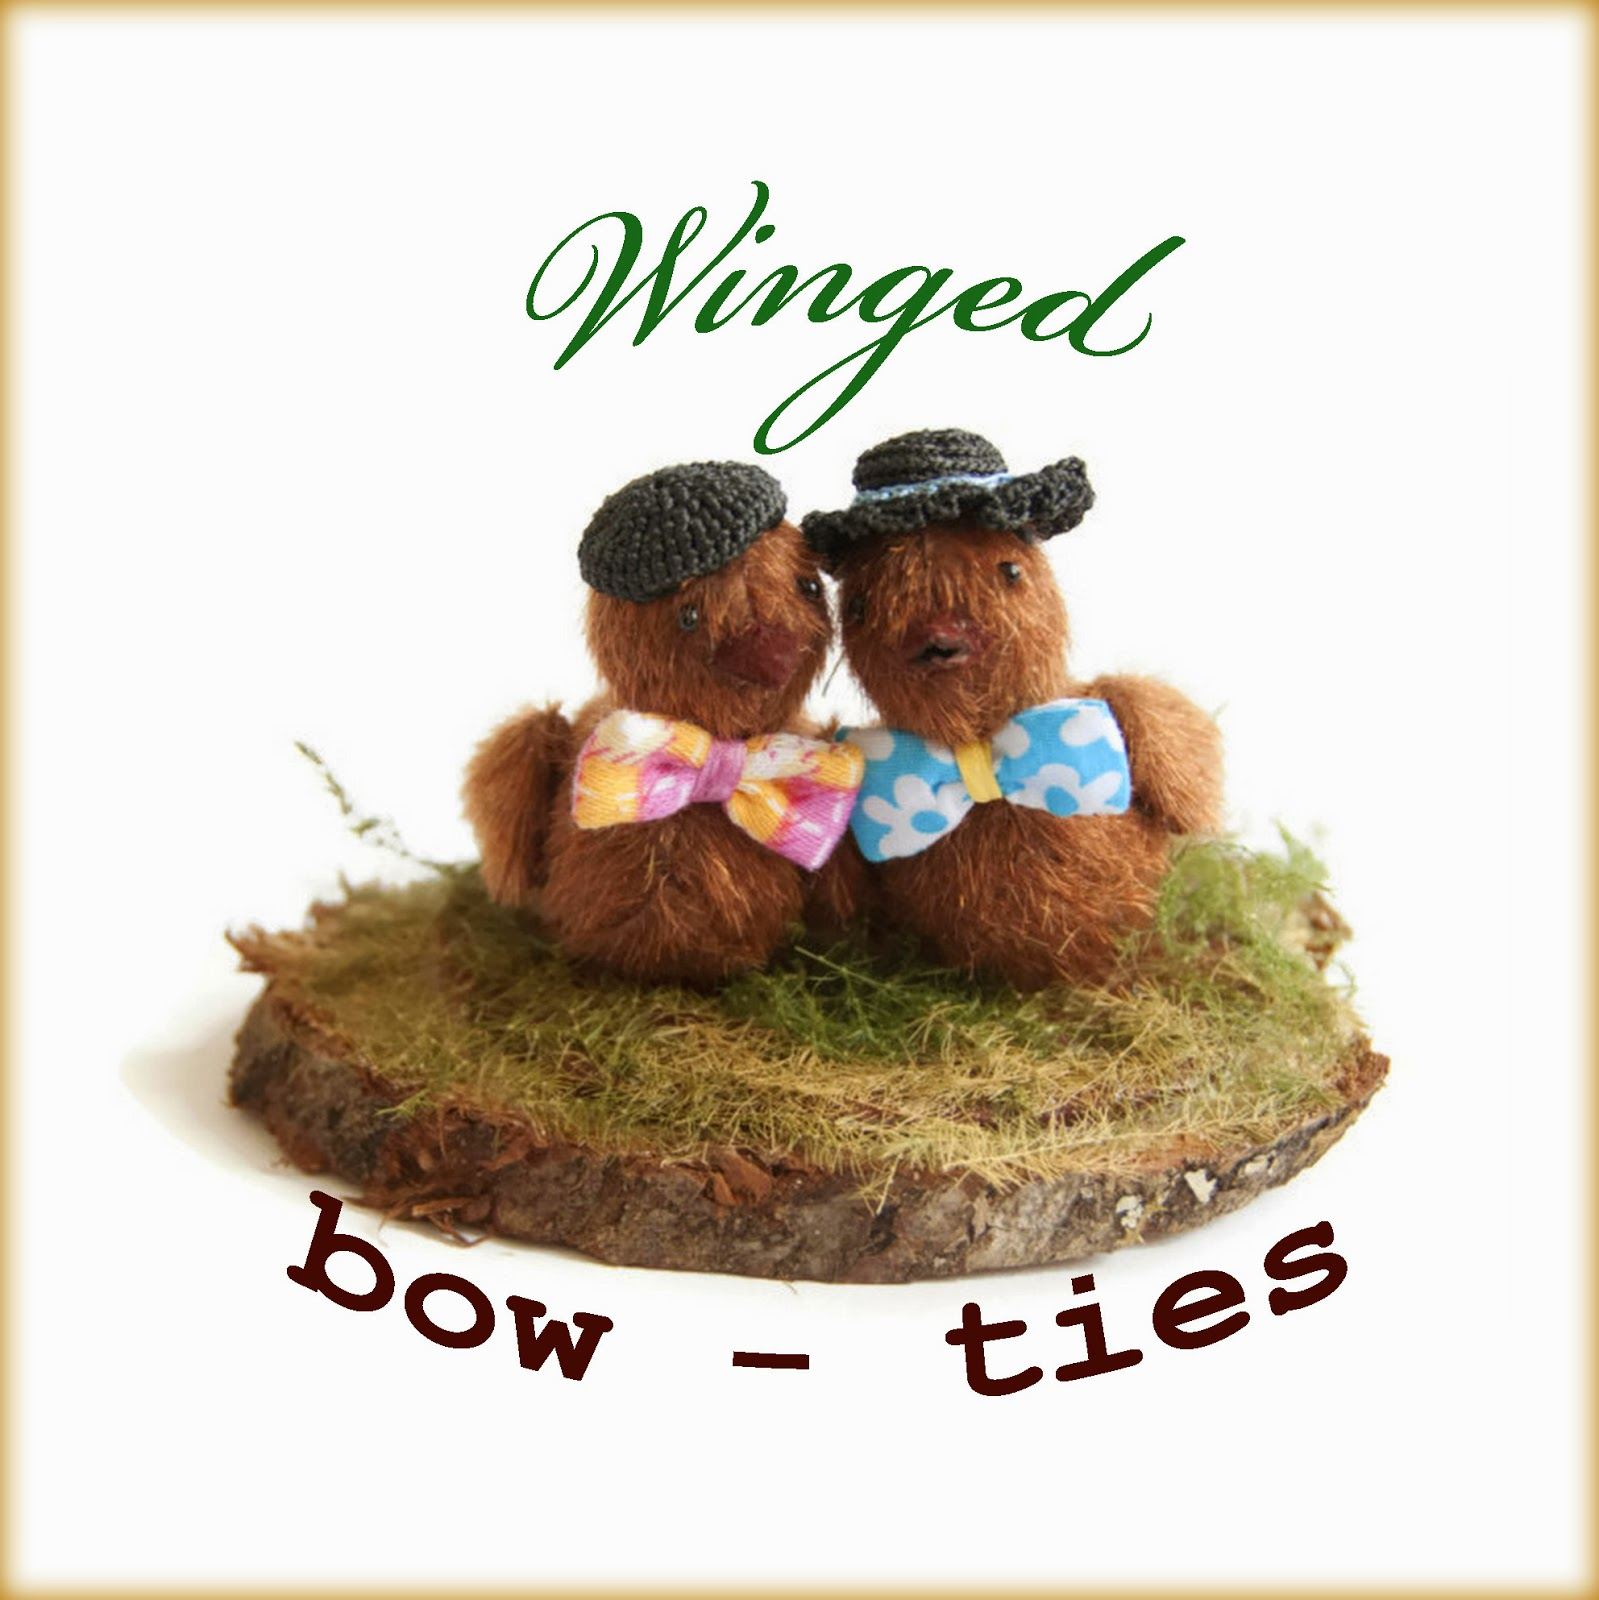 https://www.etsy.com/shop/WingedBowTies